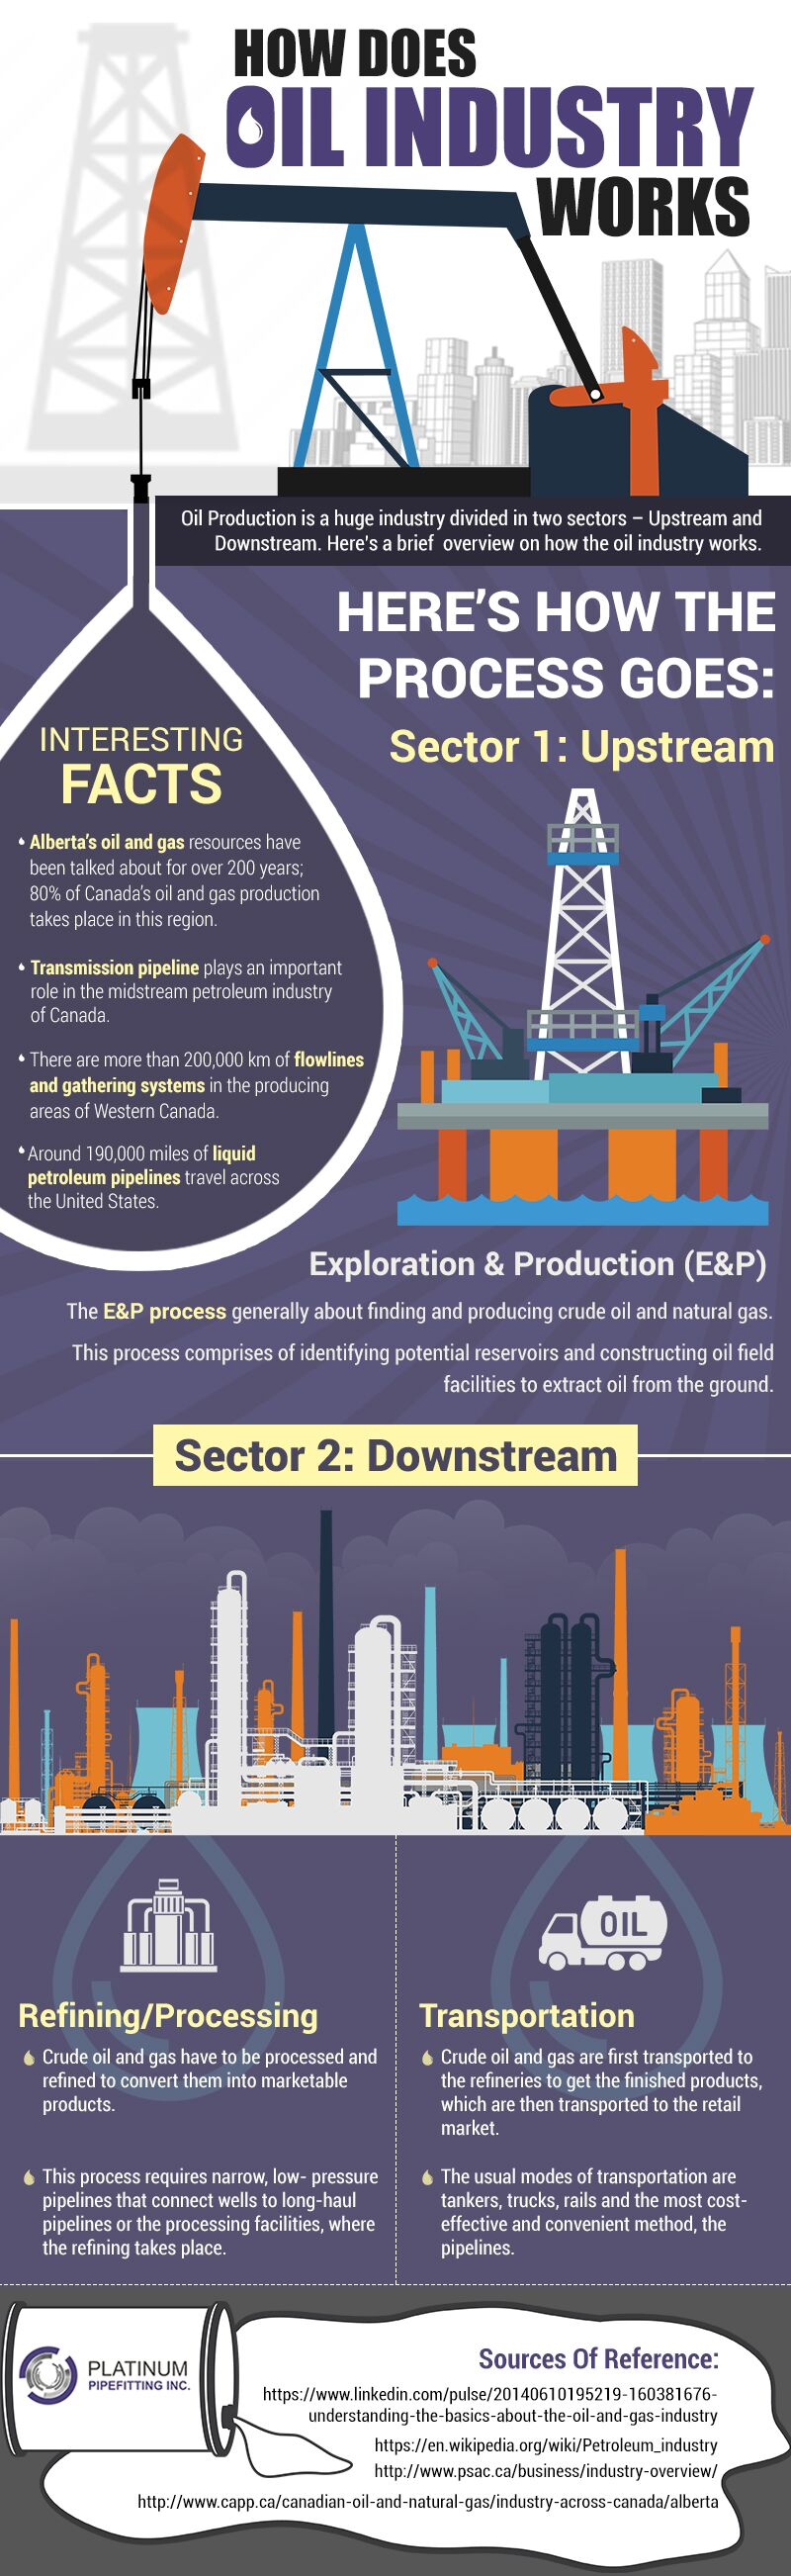 Platinumpipefitting_Infographic_preview